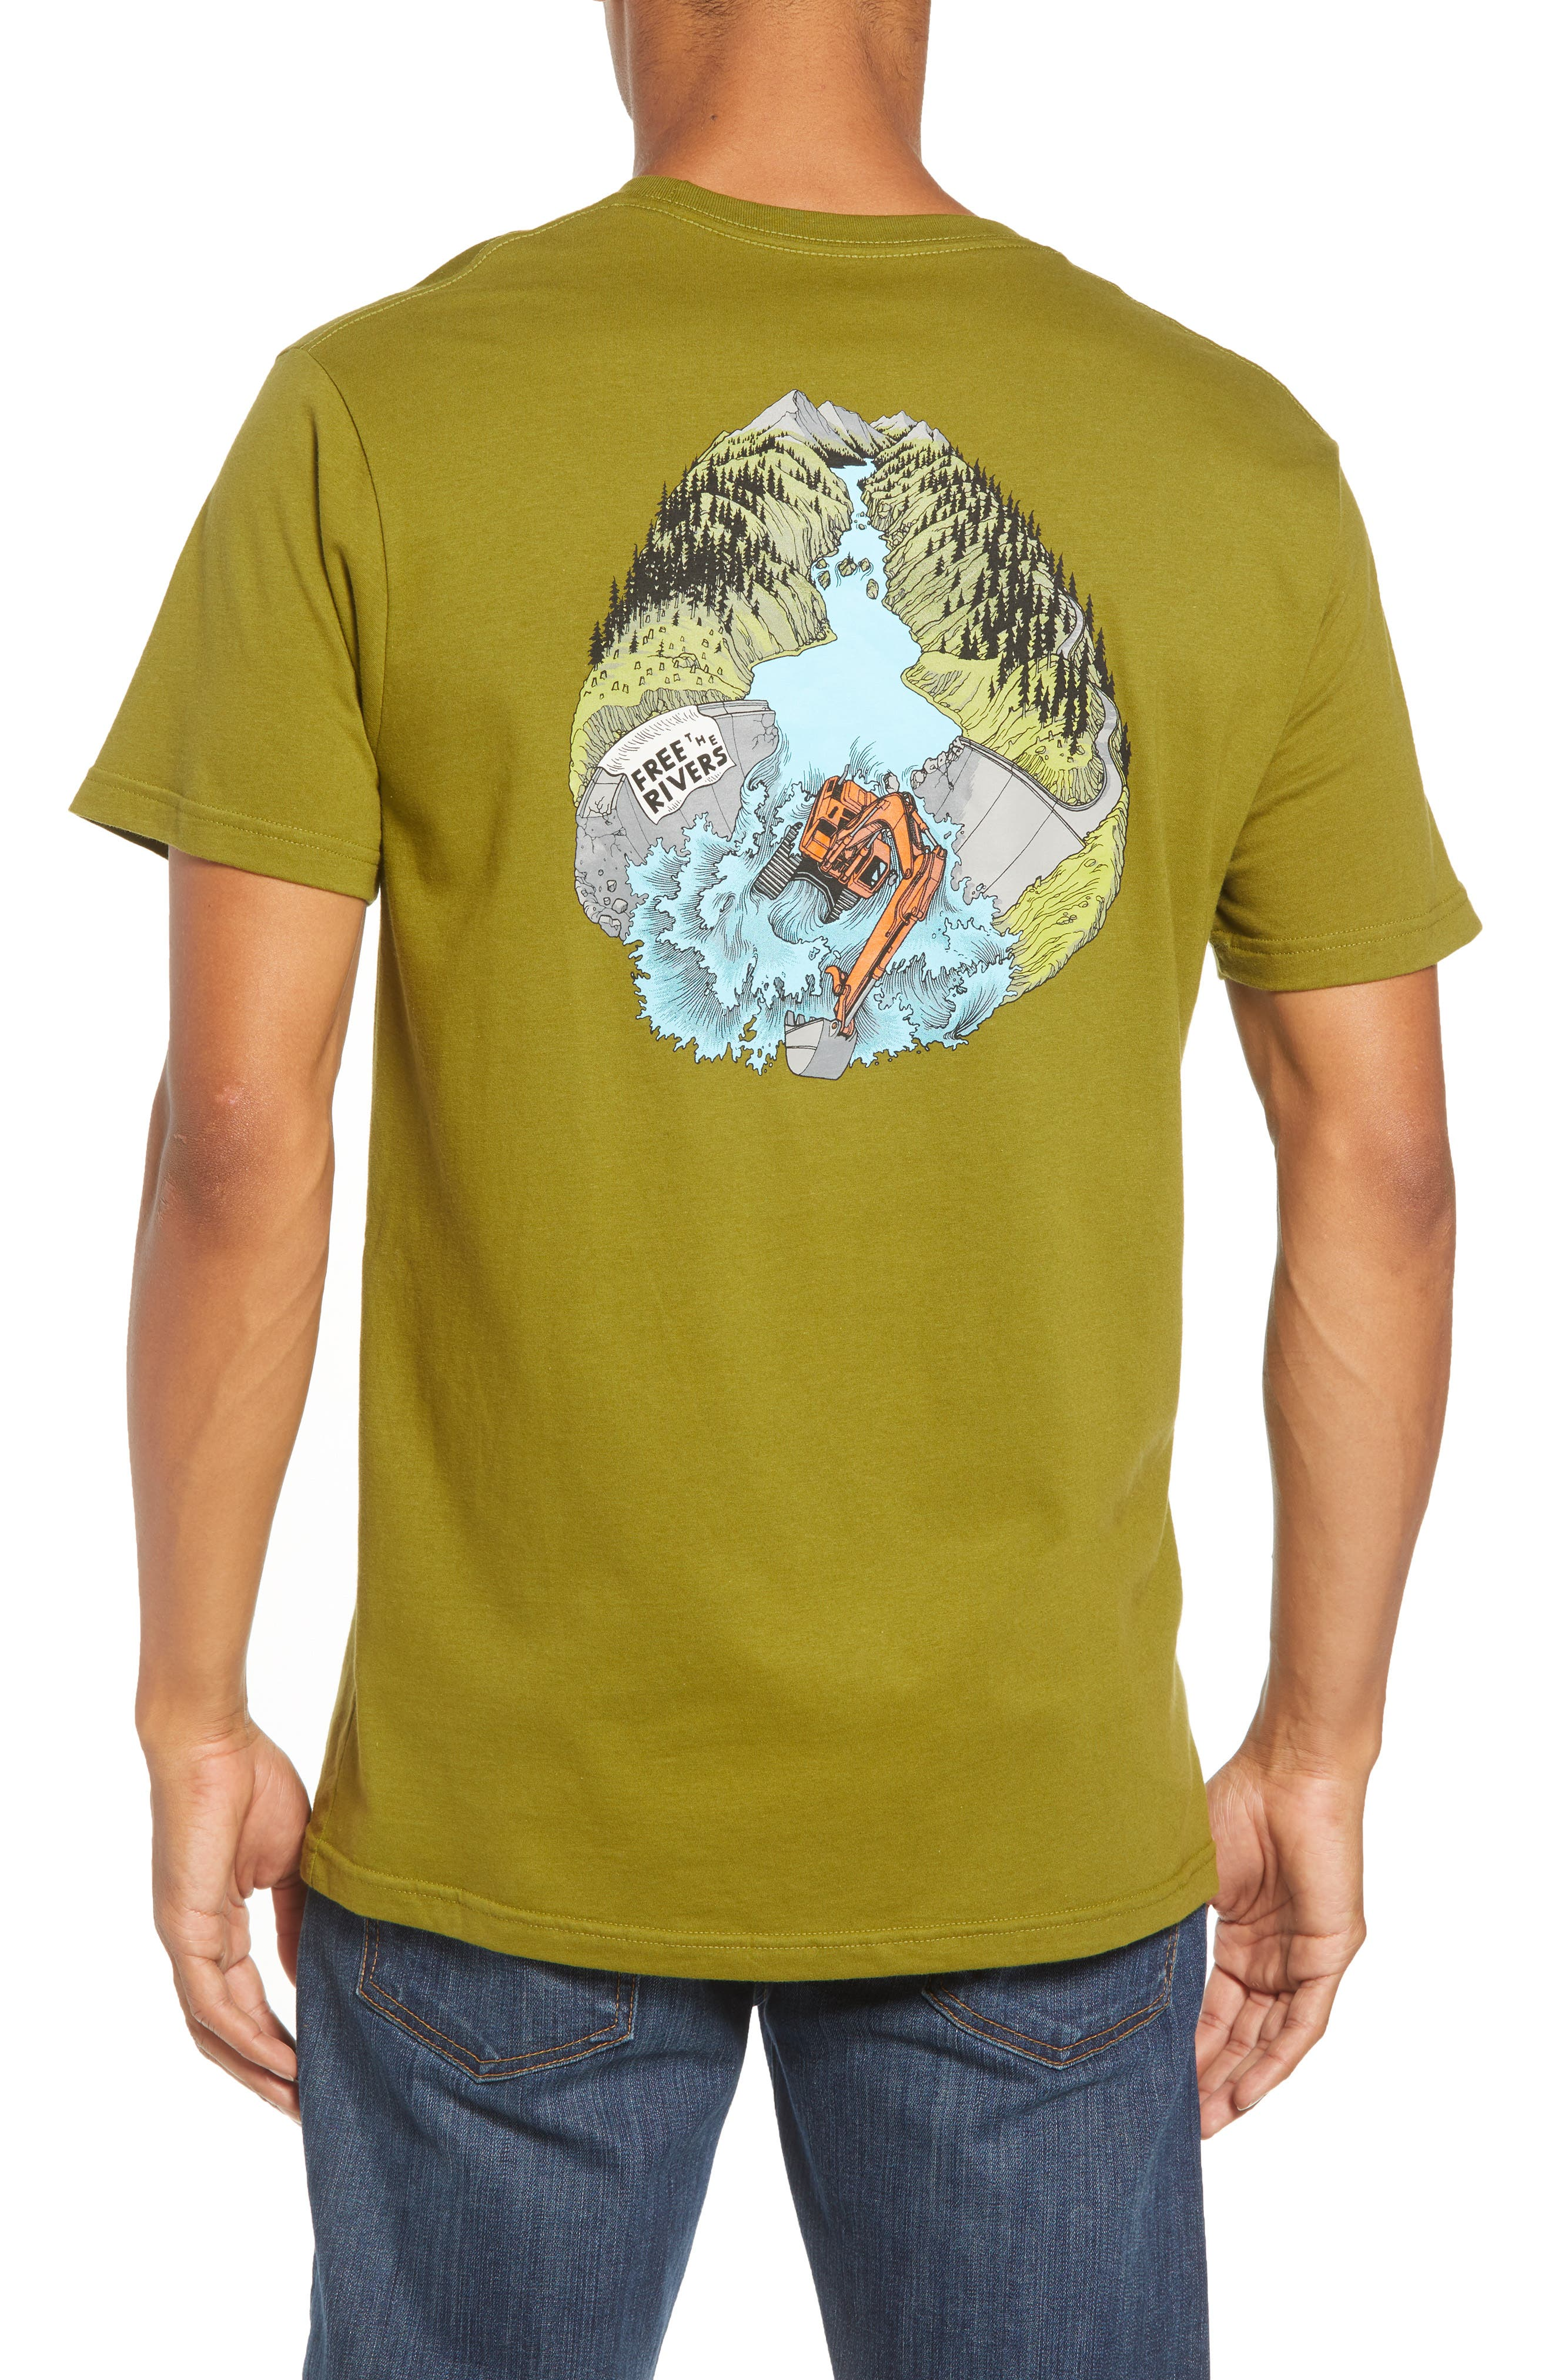 River Liberation Organic Cotton Graphic T-Shirt,                             Alternate thumbnail 2, color,                             WILLOW HERB GREEN